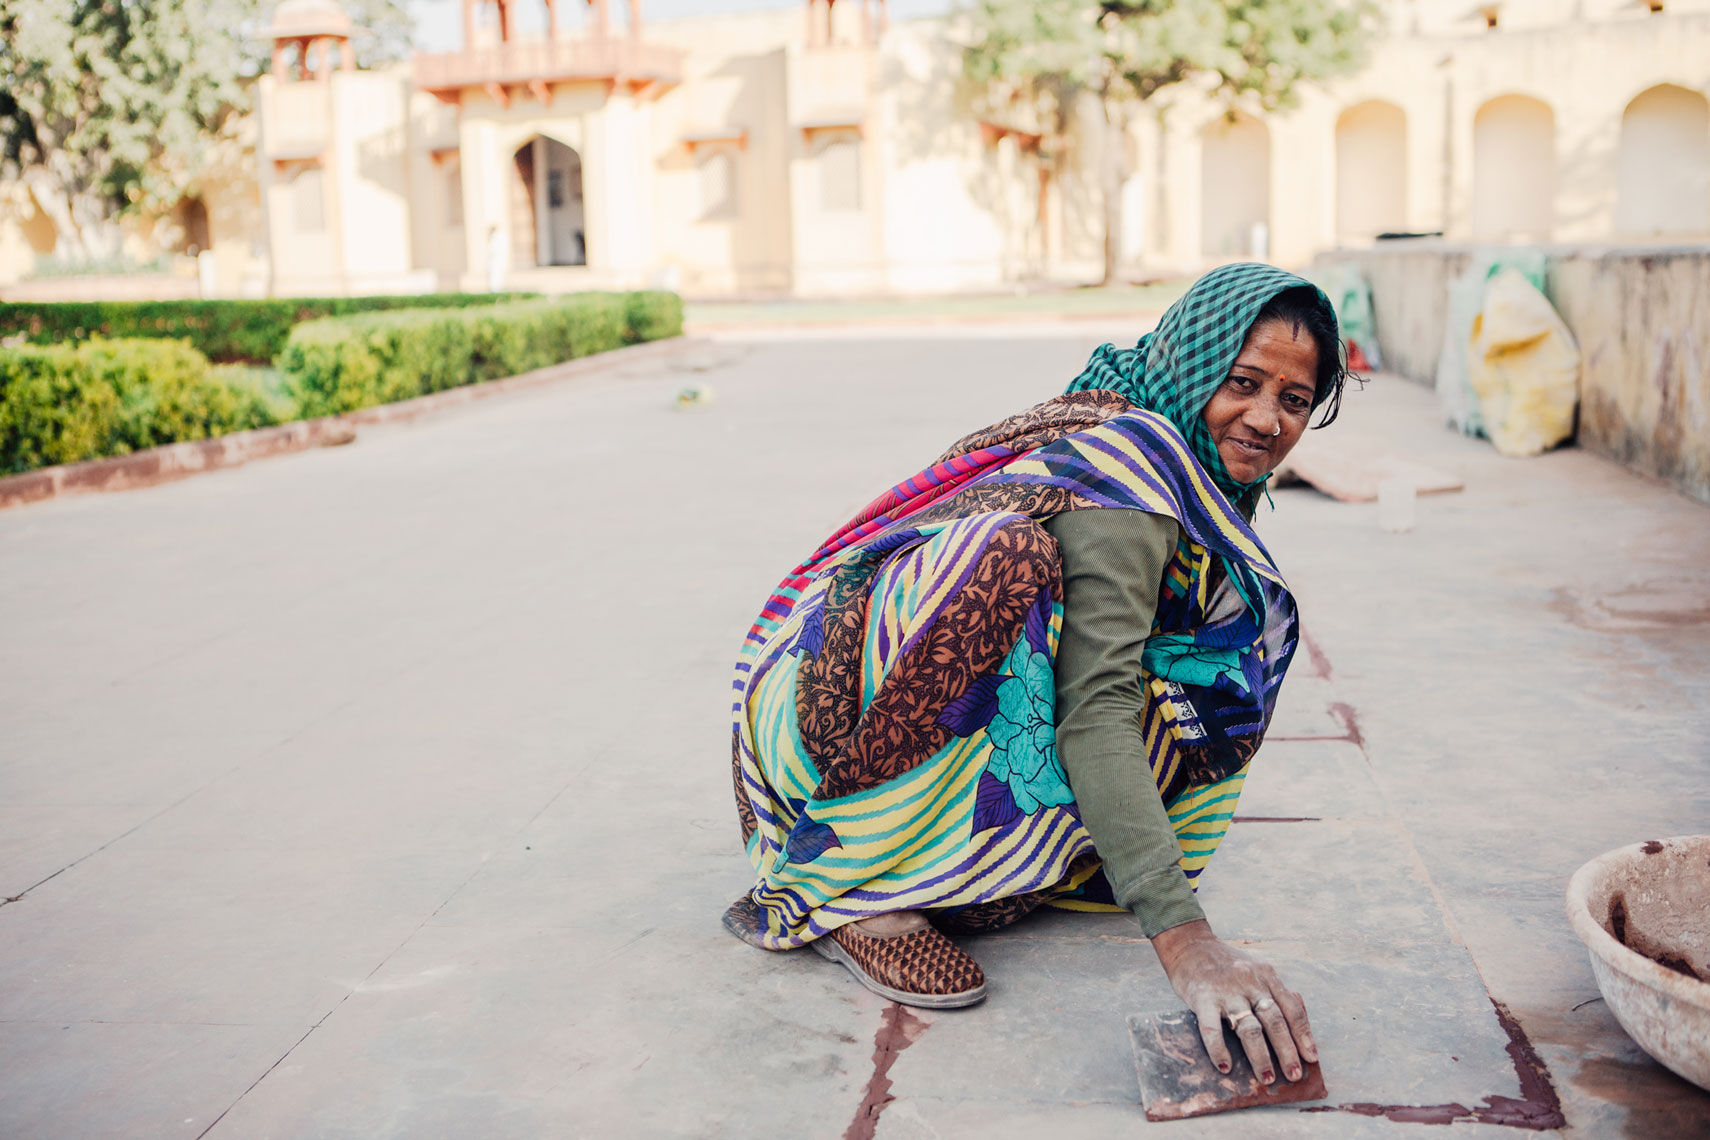 deepi-ahluwalia-india-jaipur-woman-cement